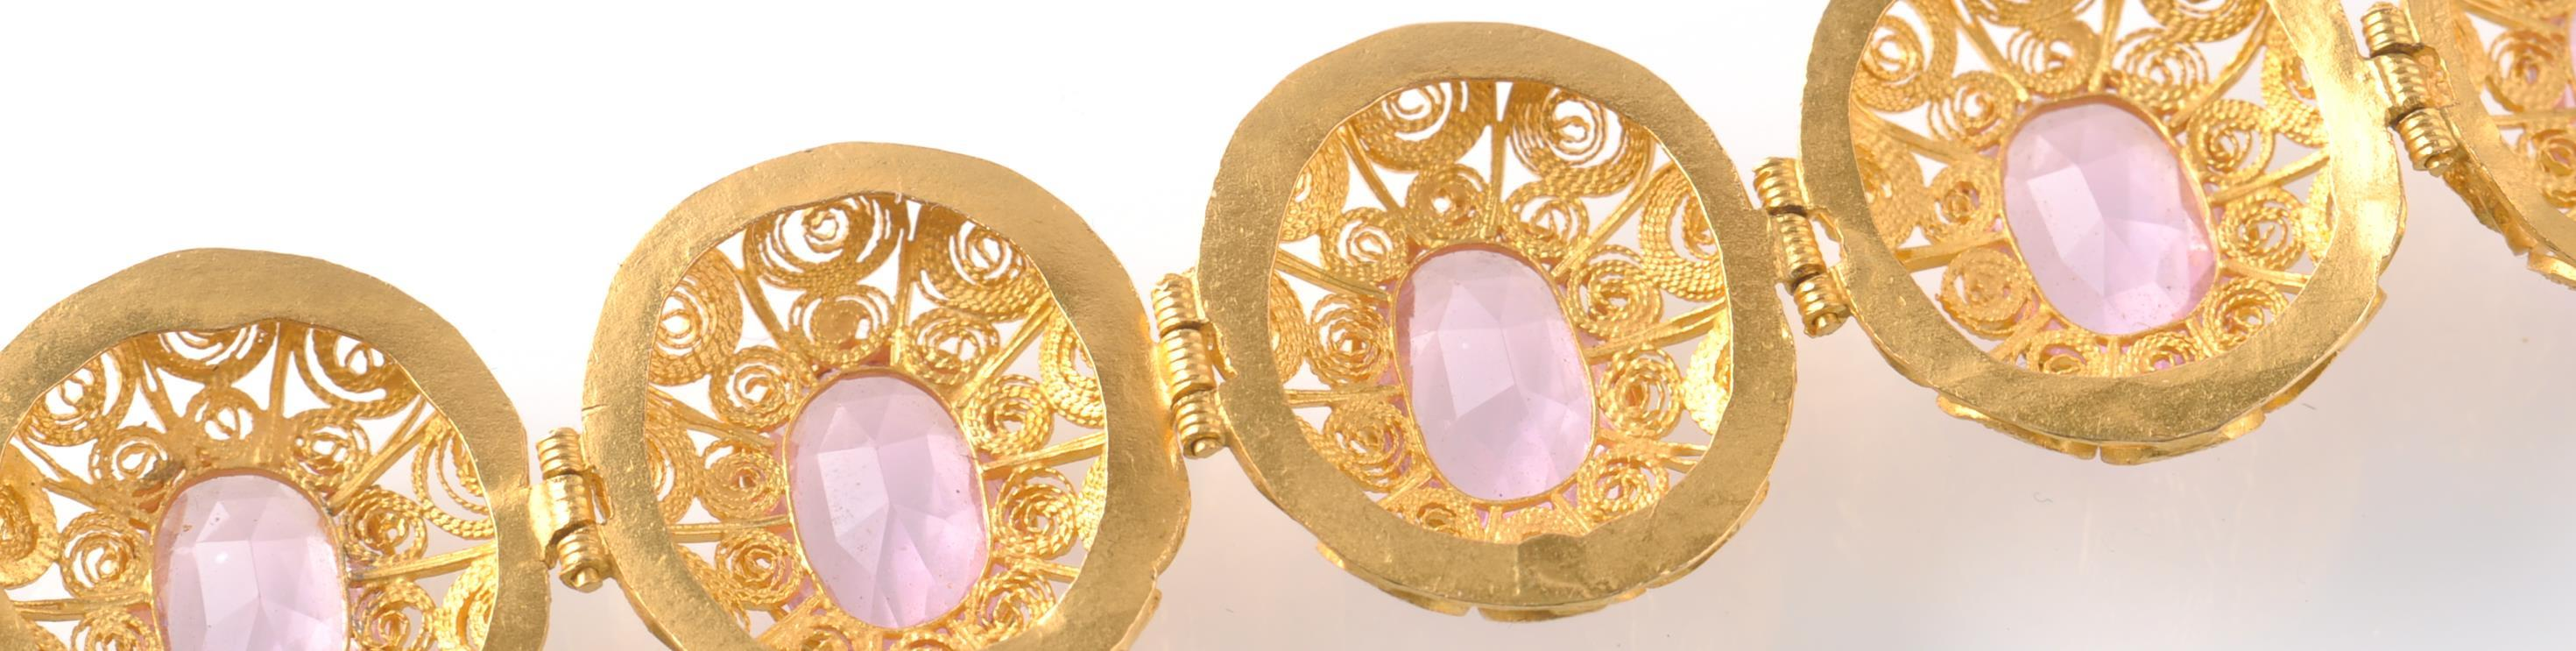 A GOLD FILIGREE AND PINK STONE BRACELET WITH PIN - Image 7 of 9